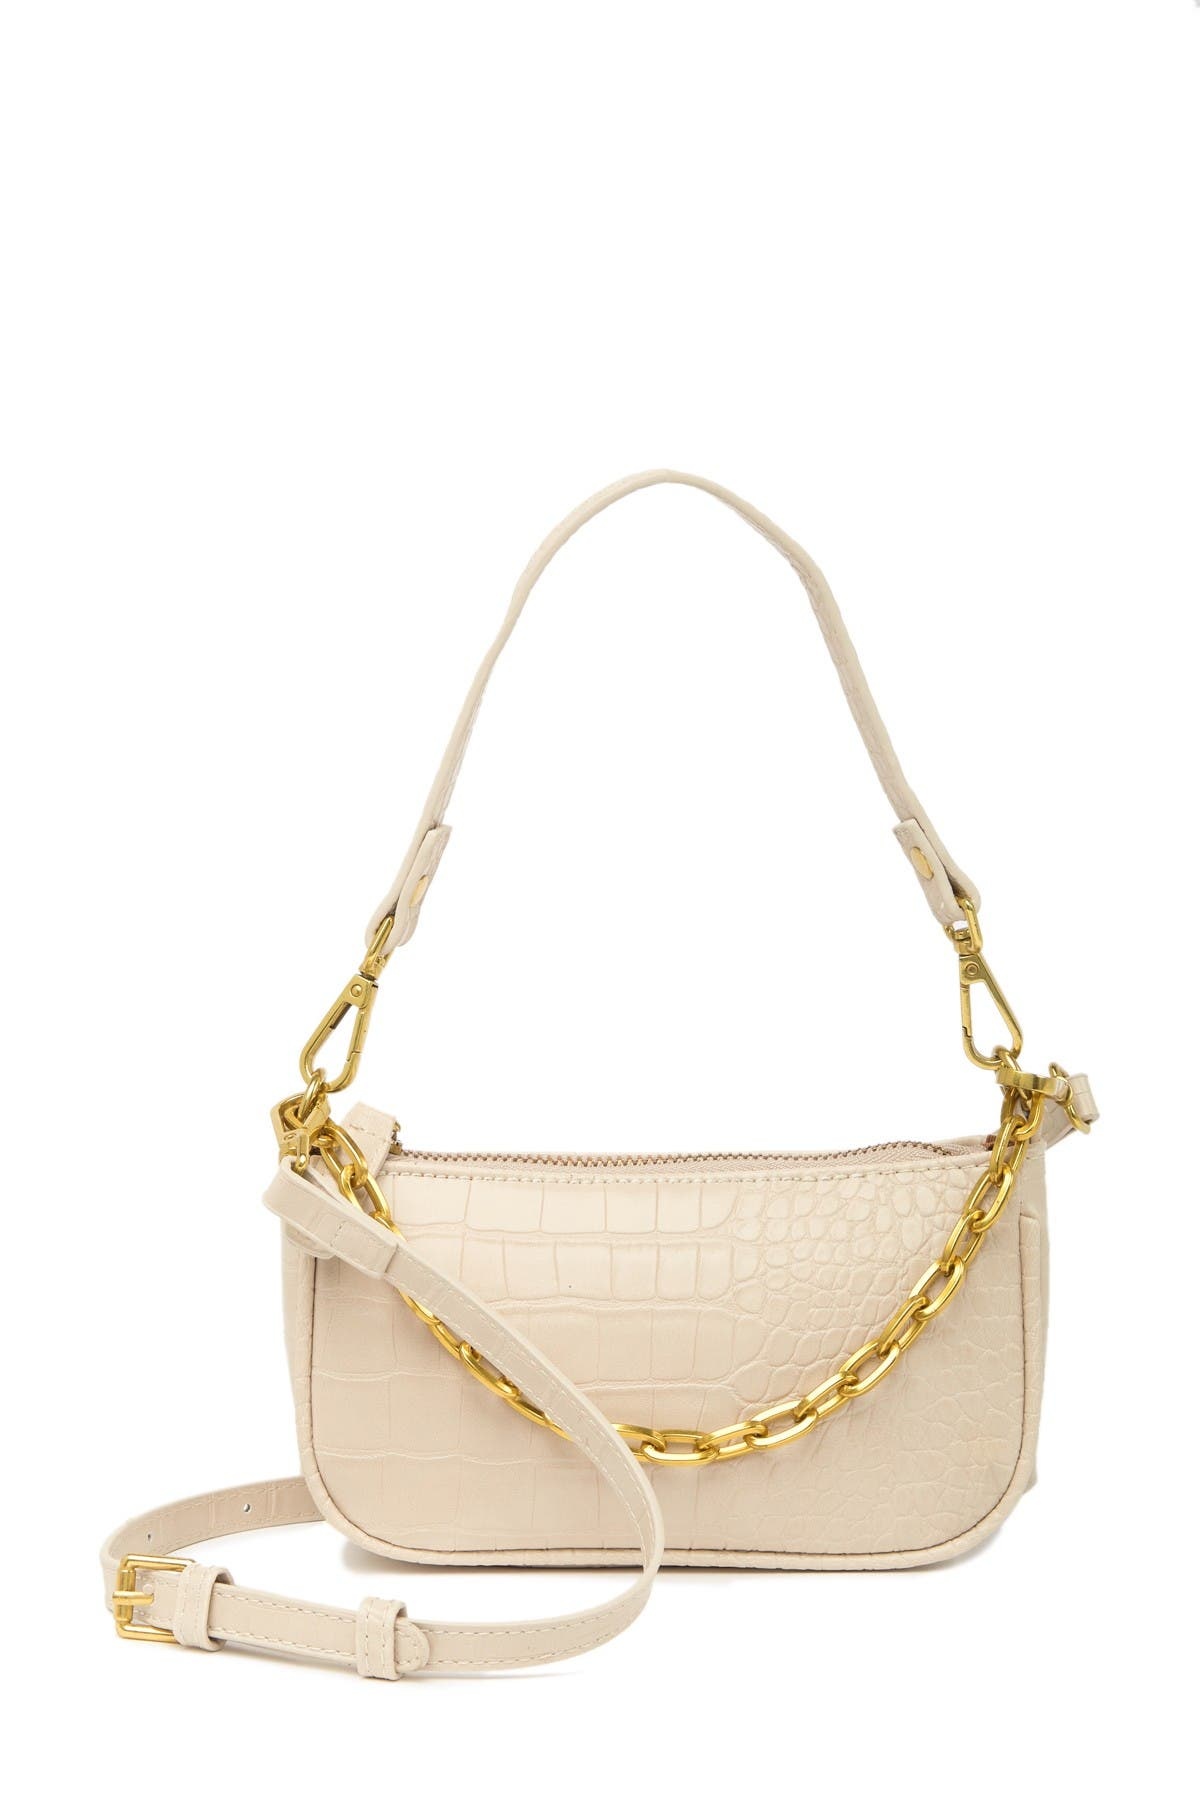 Image of Most Wanted USA Crocodile Embossed Leather Chain Baguette Crossbody Bag